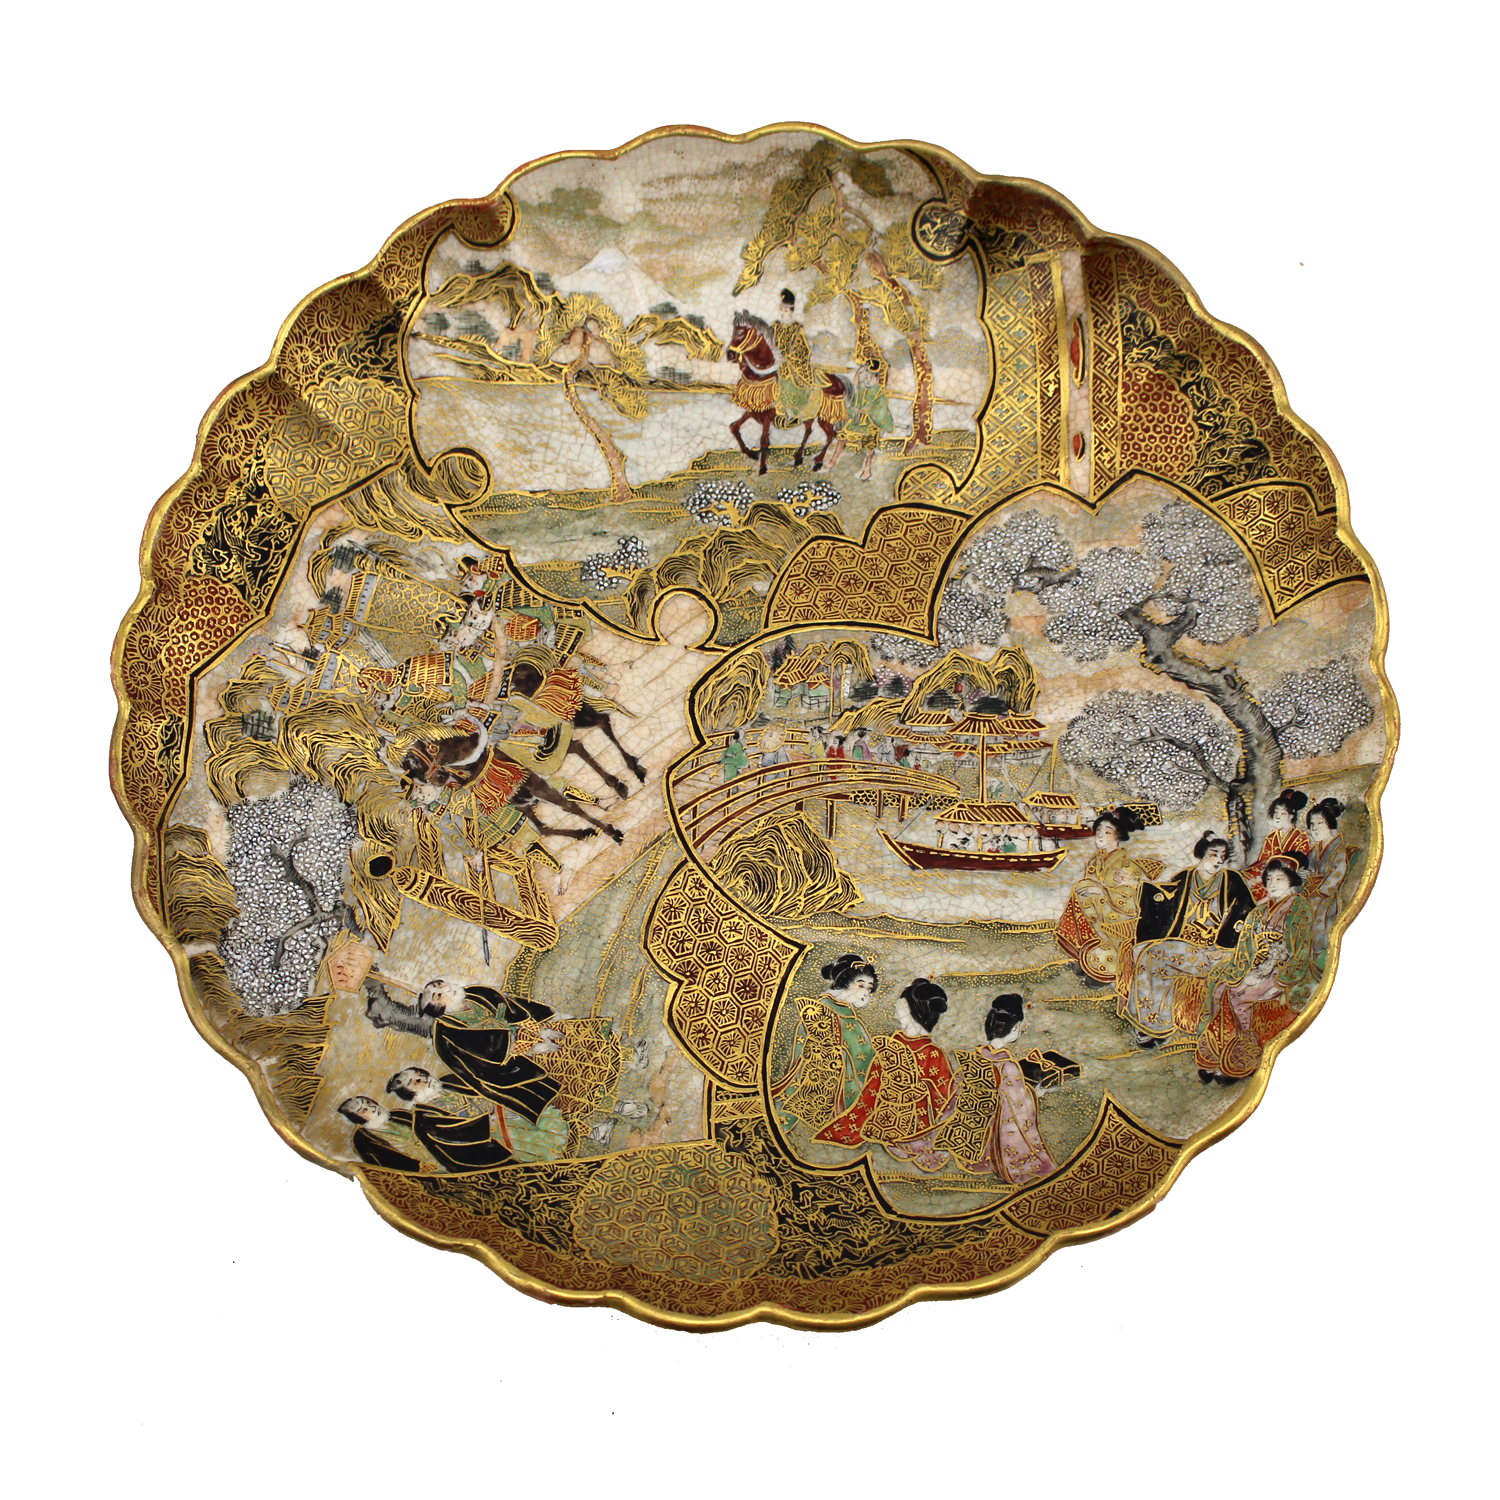 Japanese satsuma plate with scalloped edge, decorated with village scenes and figures